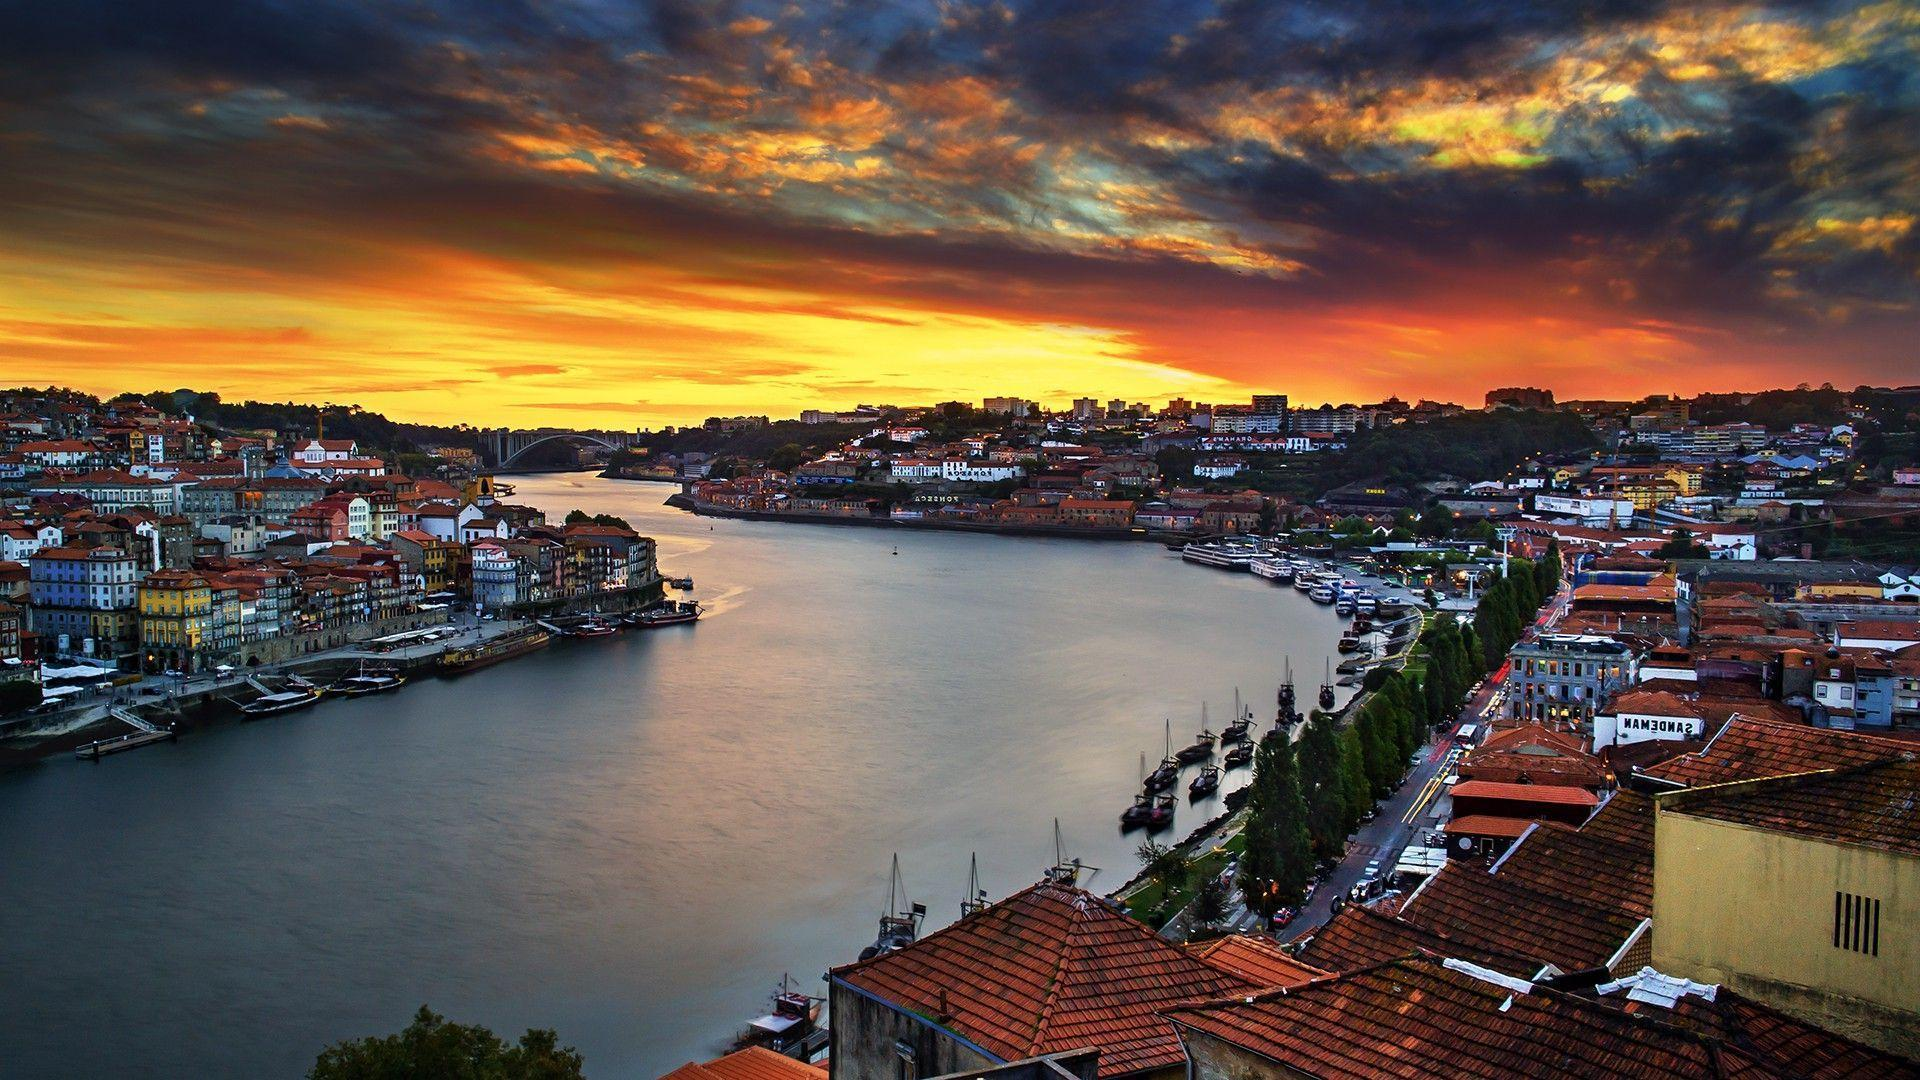 Portugal, Porto, House, River, Sunset, Bridge, Landscape, Boat ...